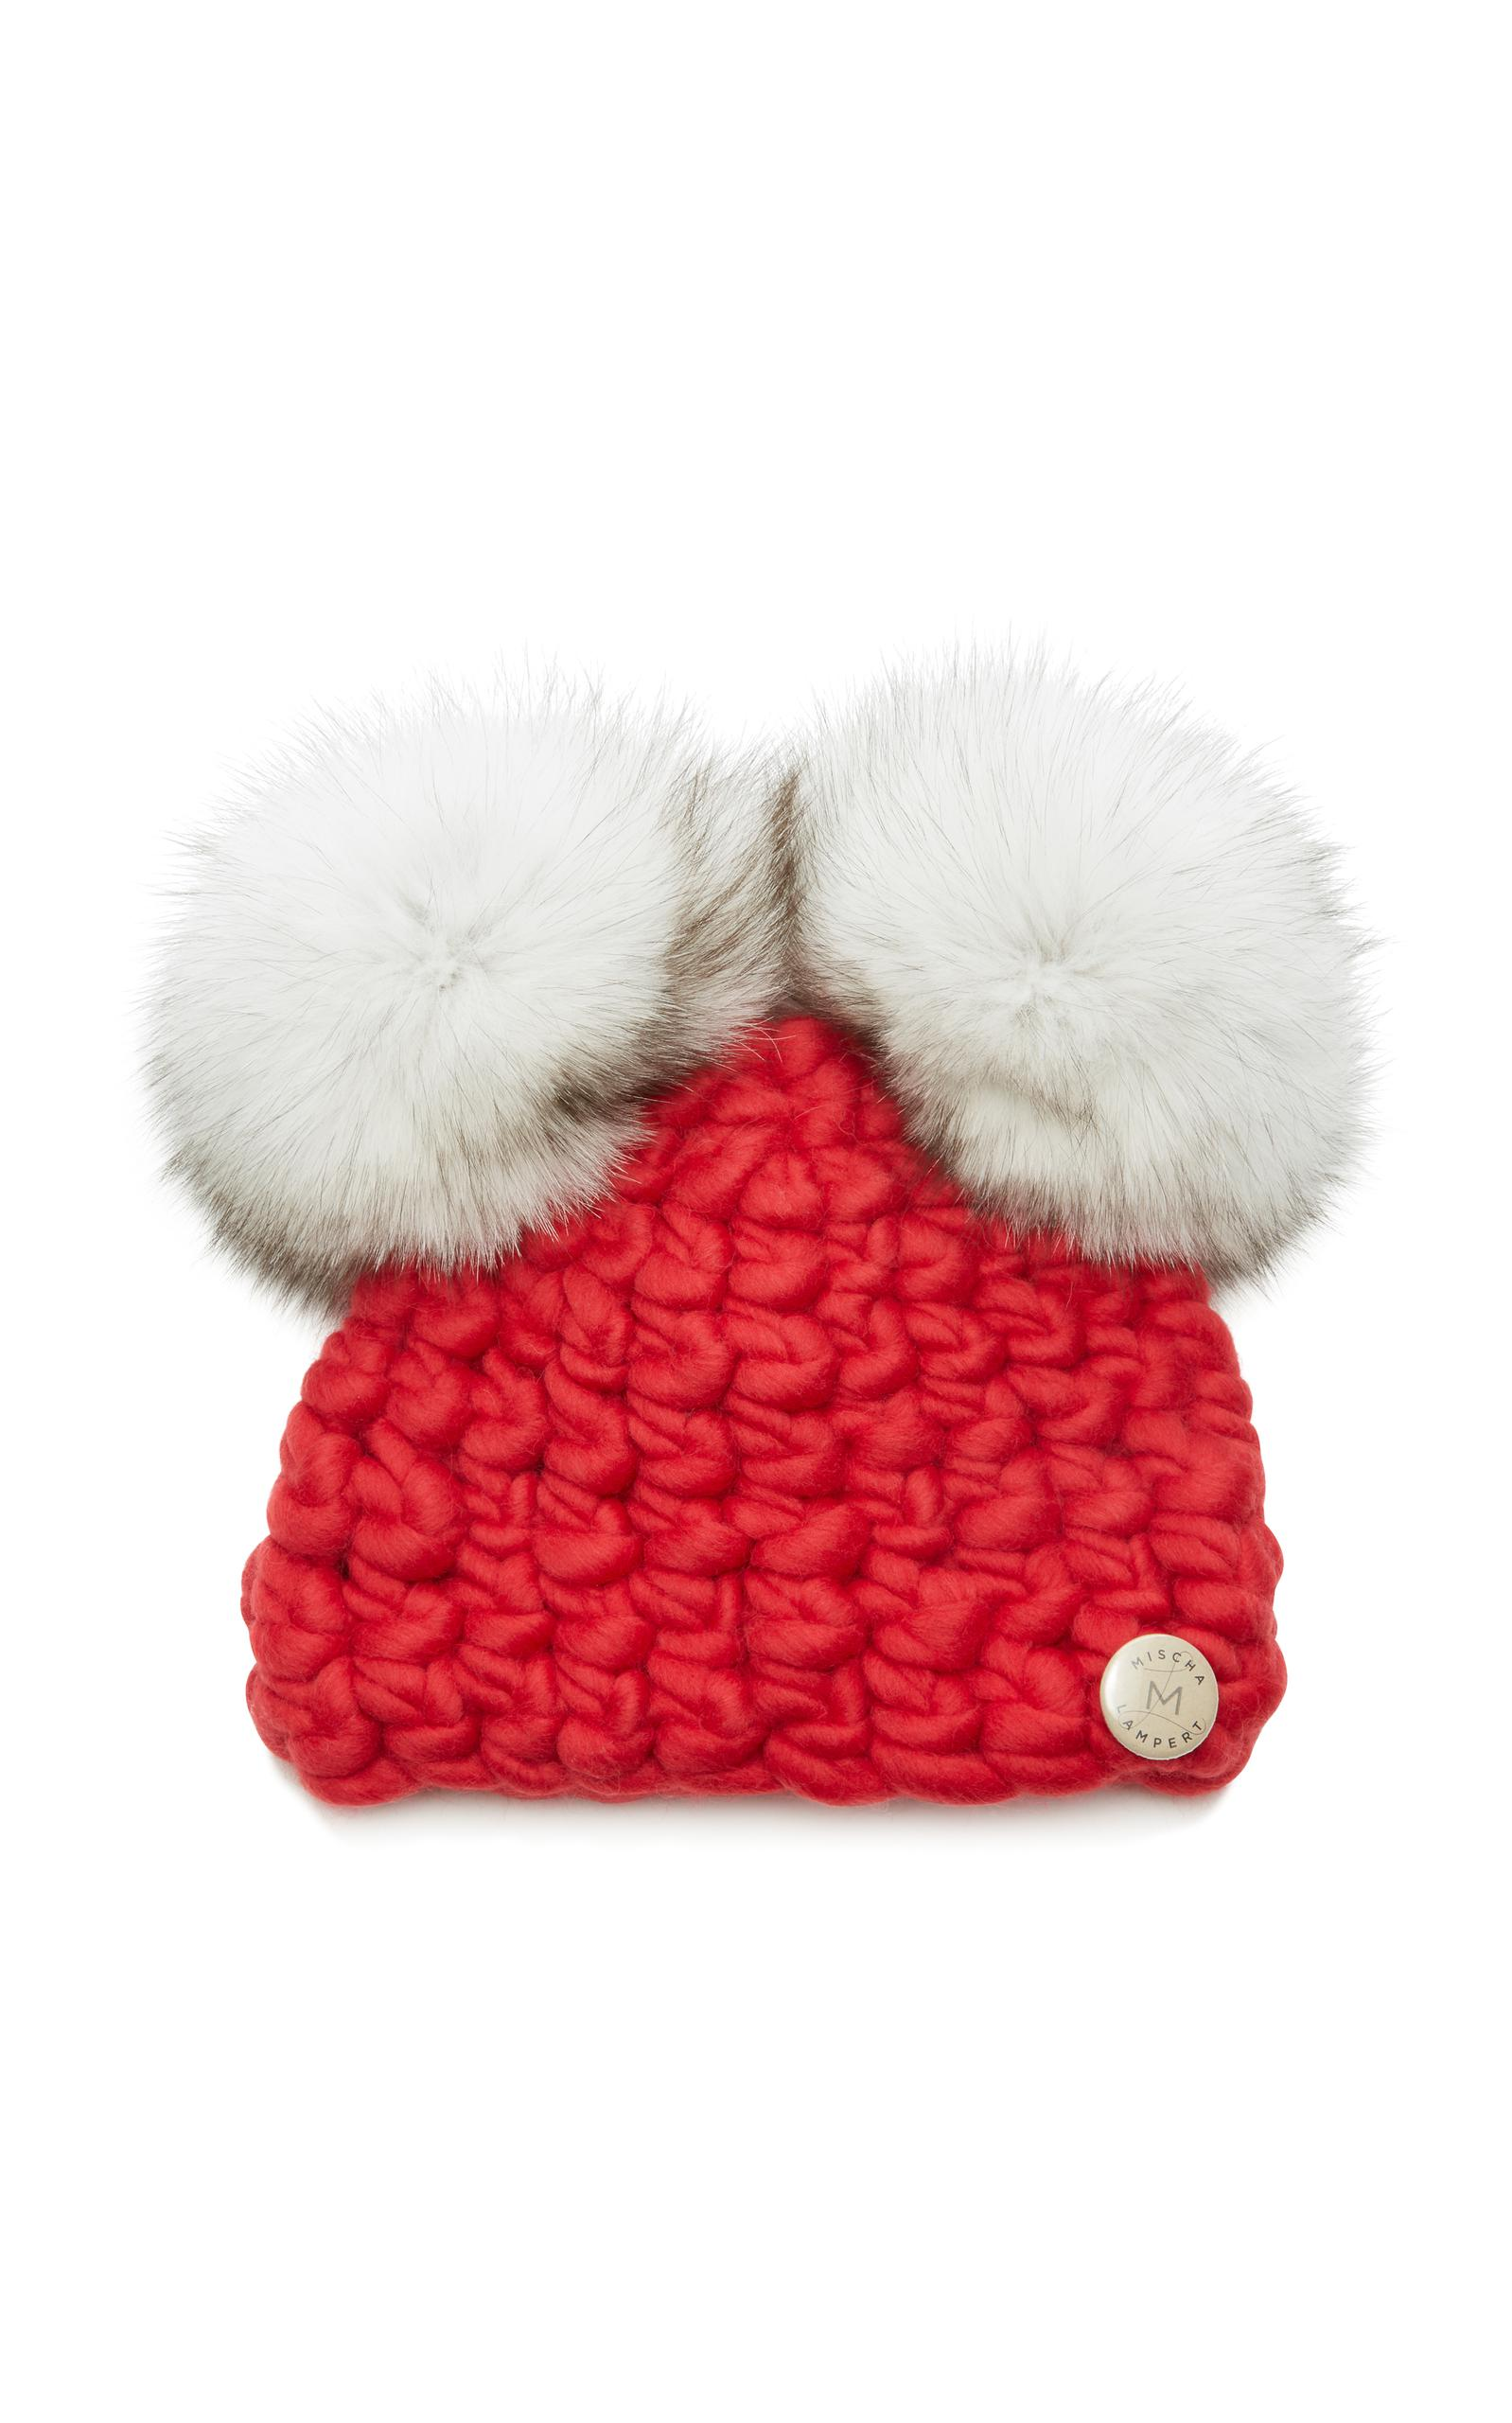 Lyst - Mischa Lampert Mickey Mouse Merino Wool Infant Beanie in Red 7955931f3e55